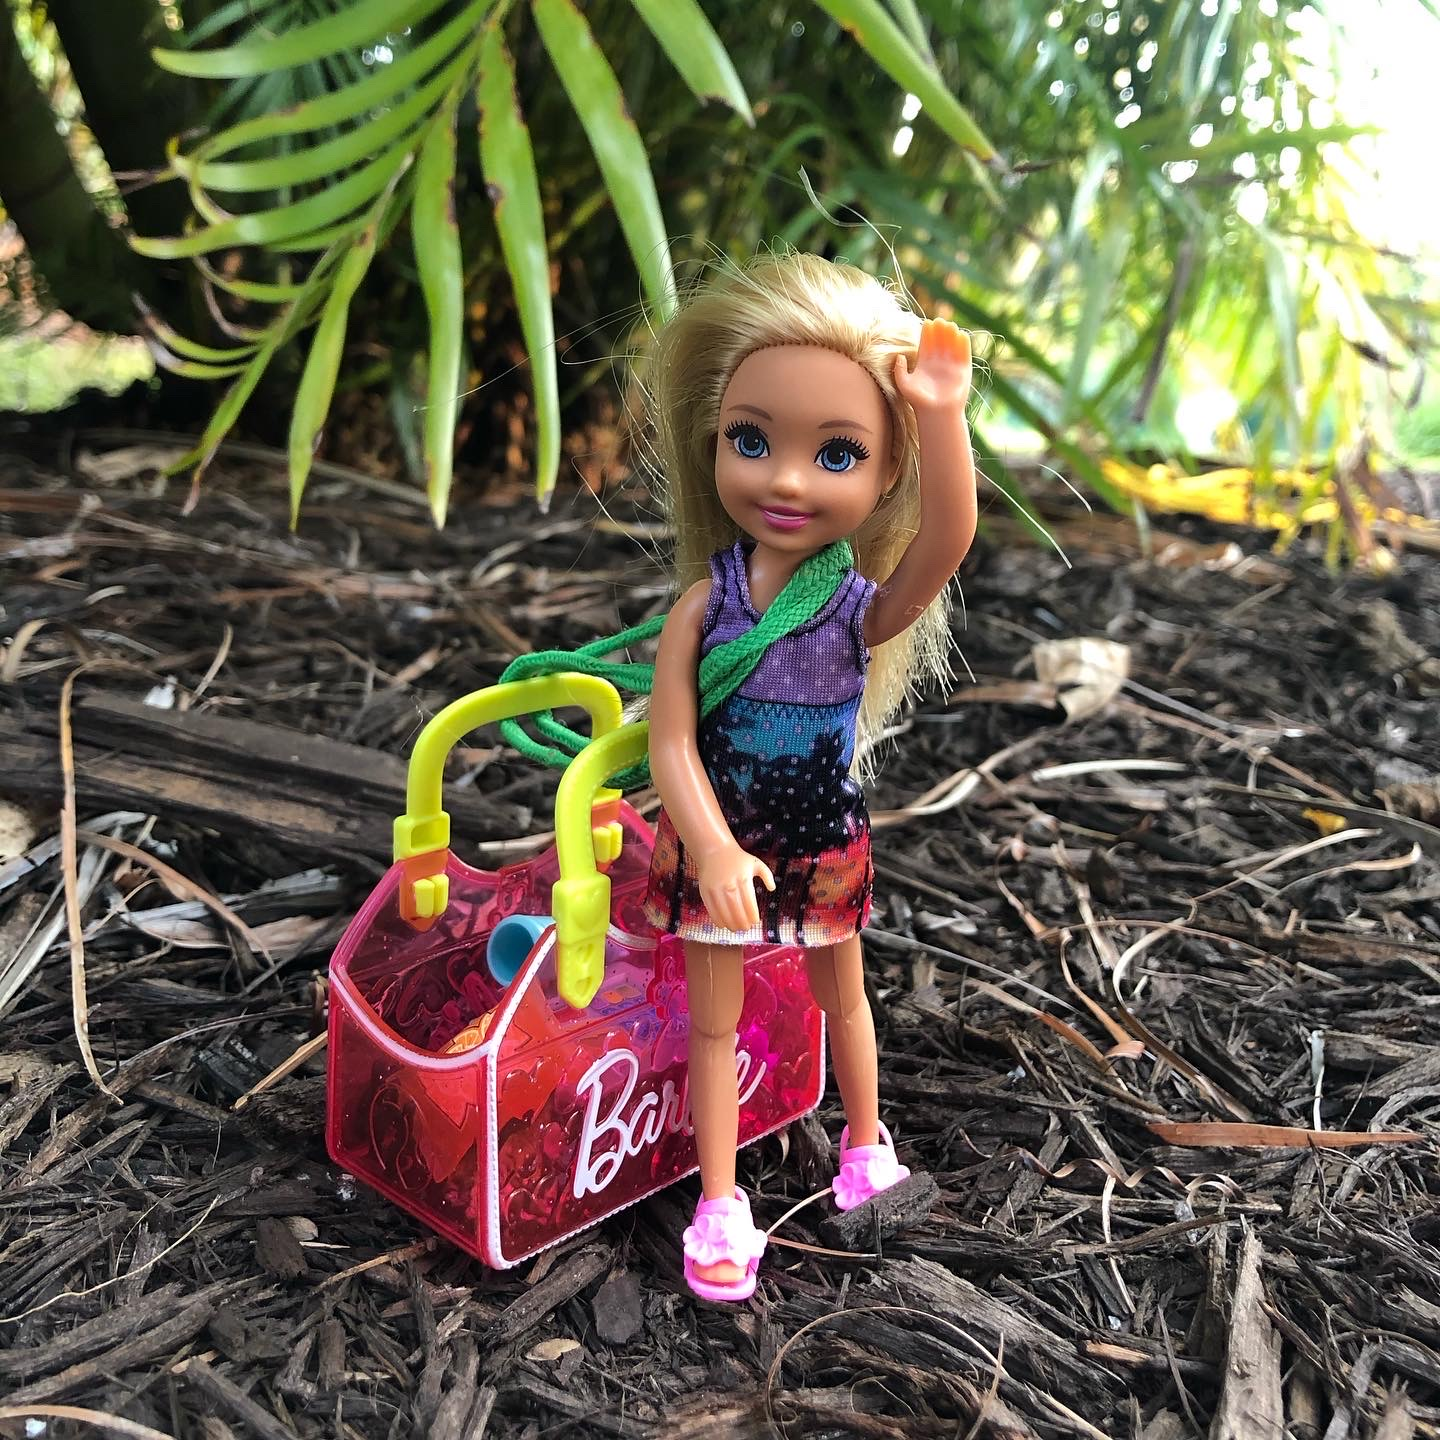 A Chelsea doll waving at the camera with a pink Barbie bag next to her for the Barbie story for kids, Hiking in Costa Rica.